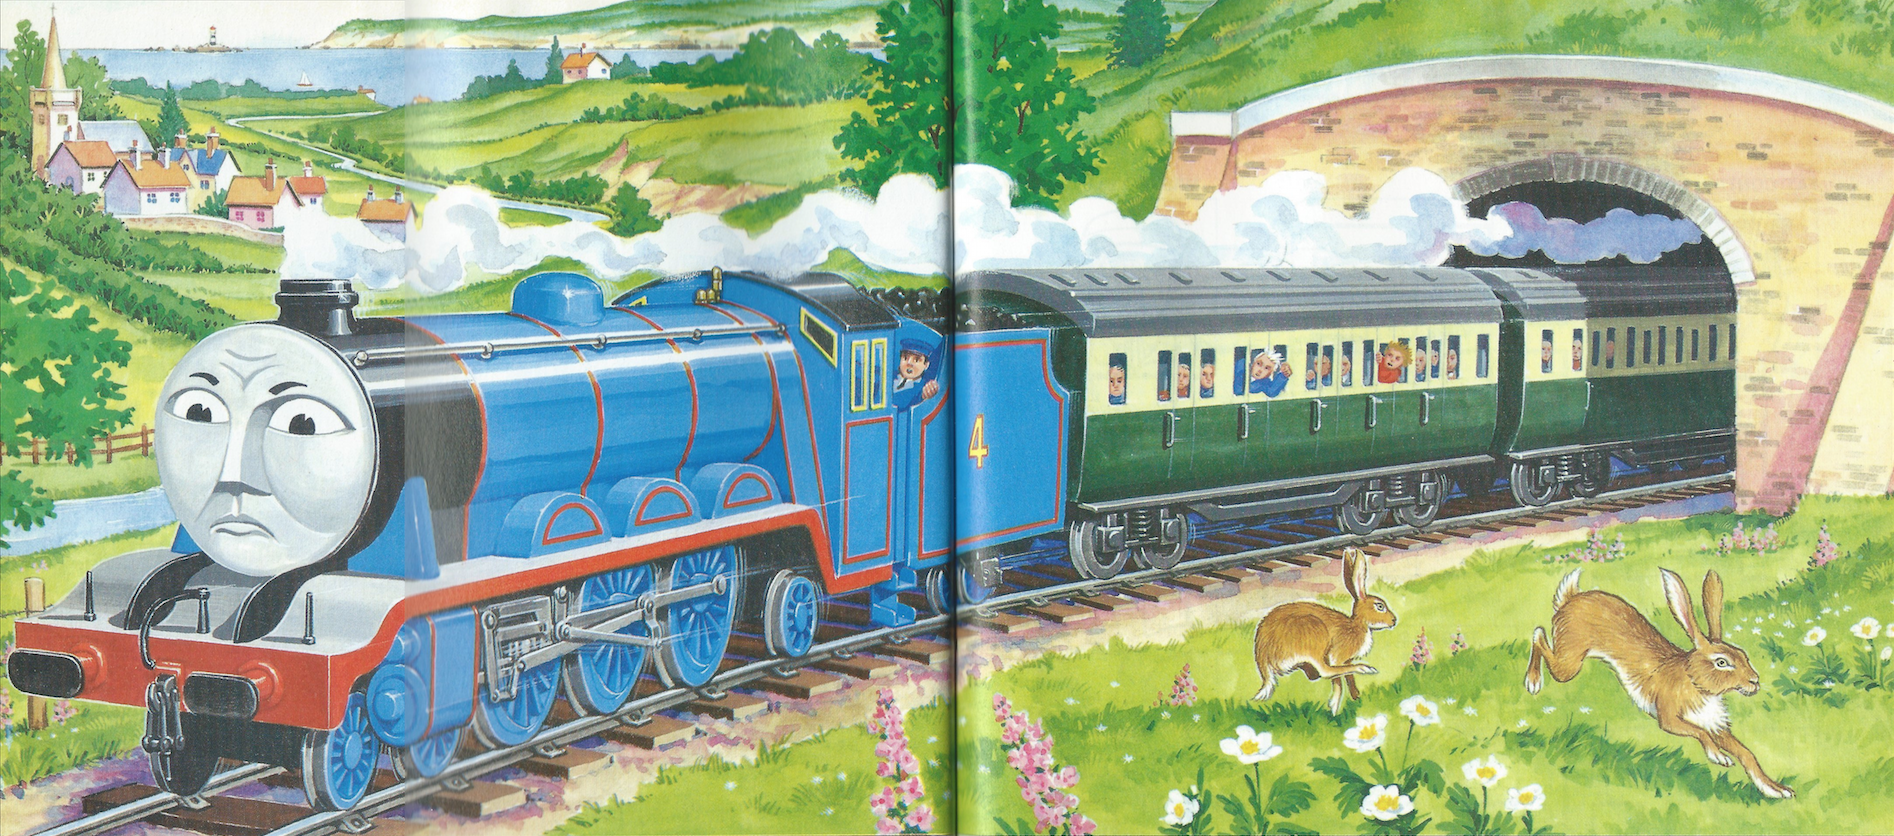 Adventures of orient express 1995 by luca damiano Part 4 5